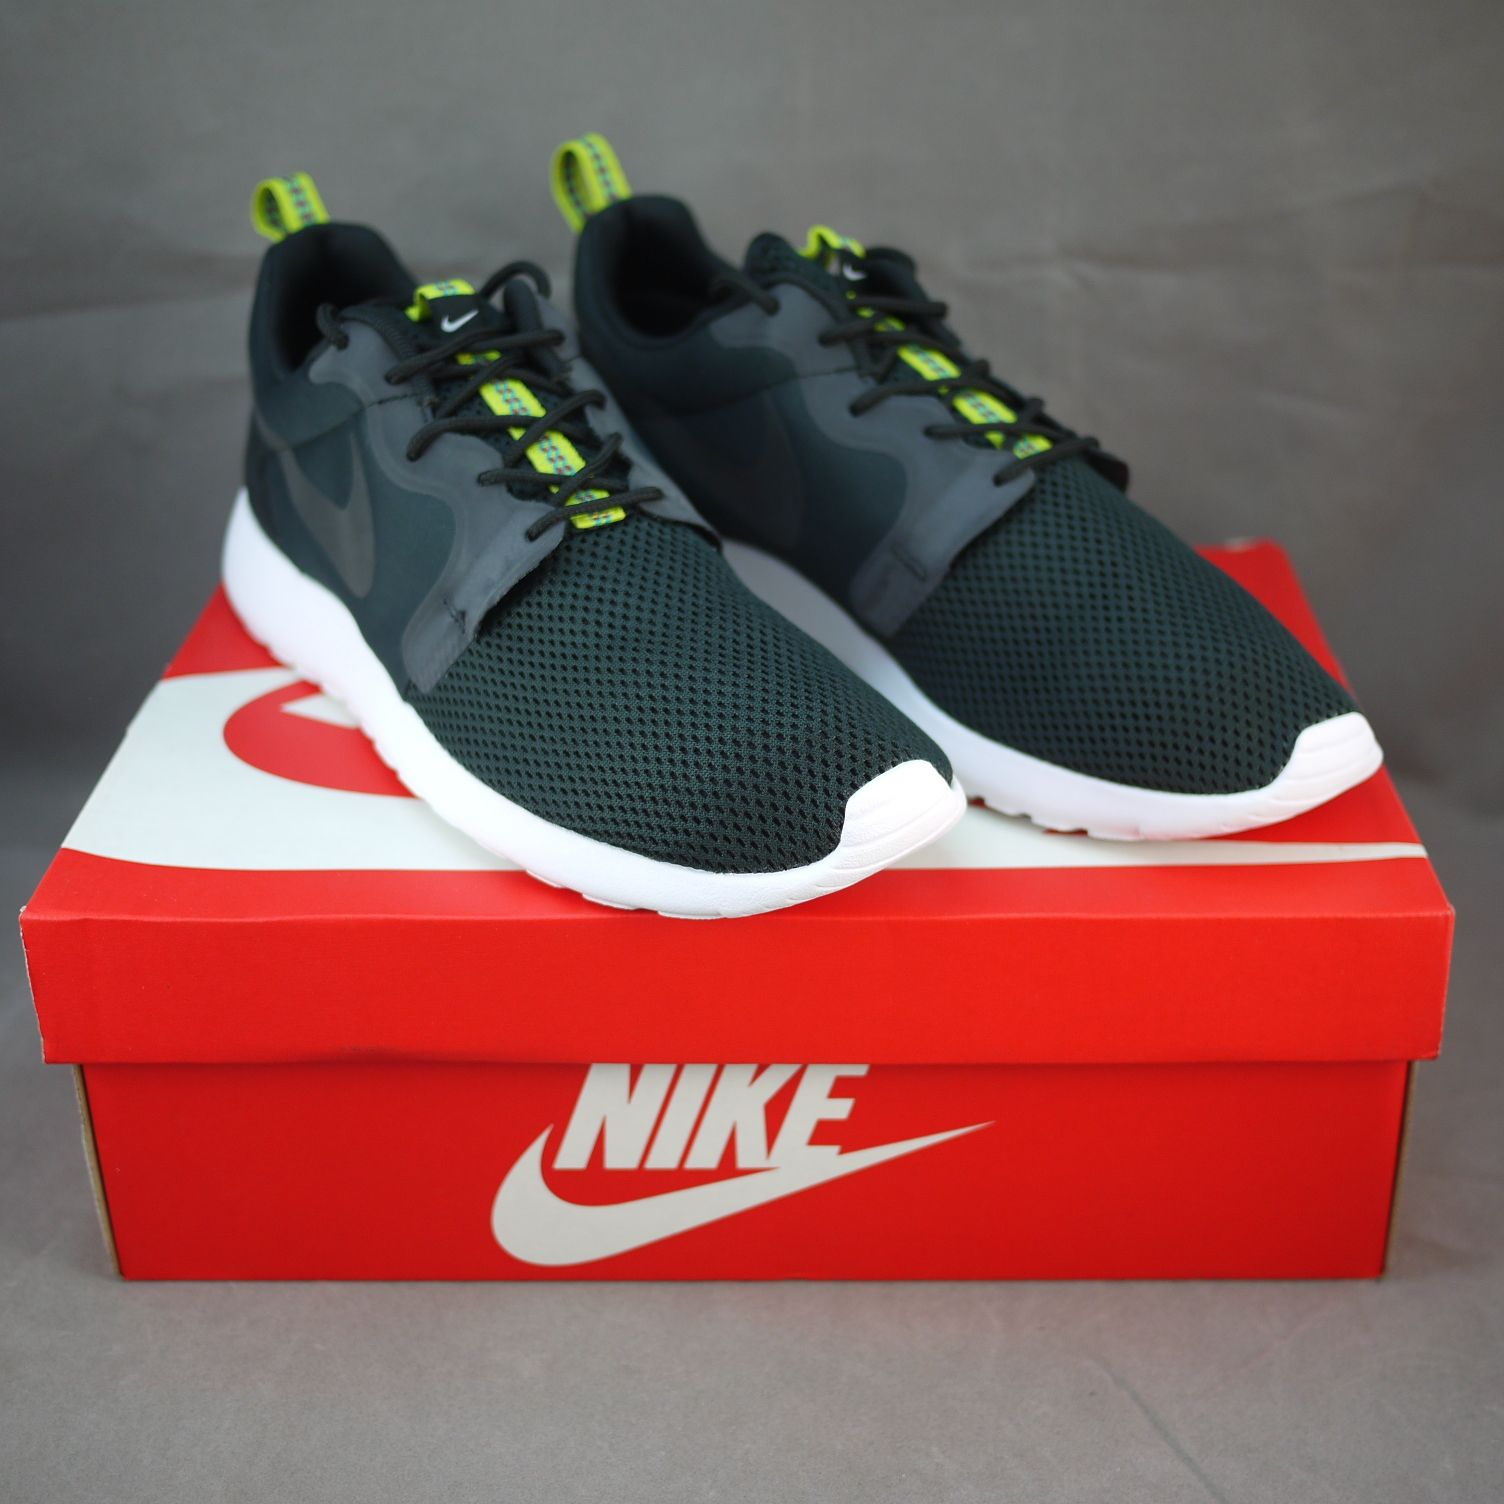 Authentic Nike Roshe Run Hyperfuse - Running Shoes - Black/Anthracite/Venom Green